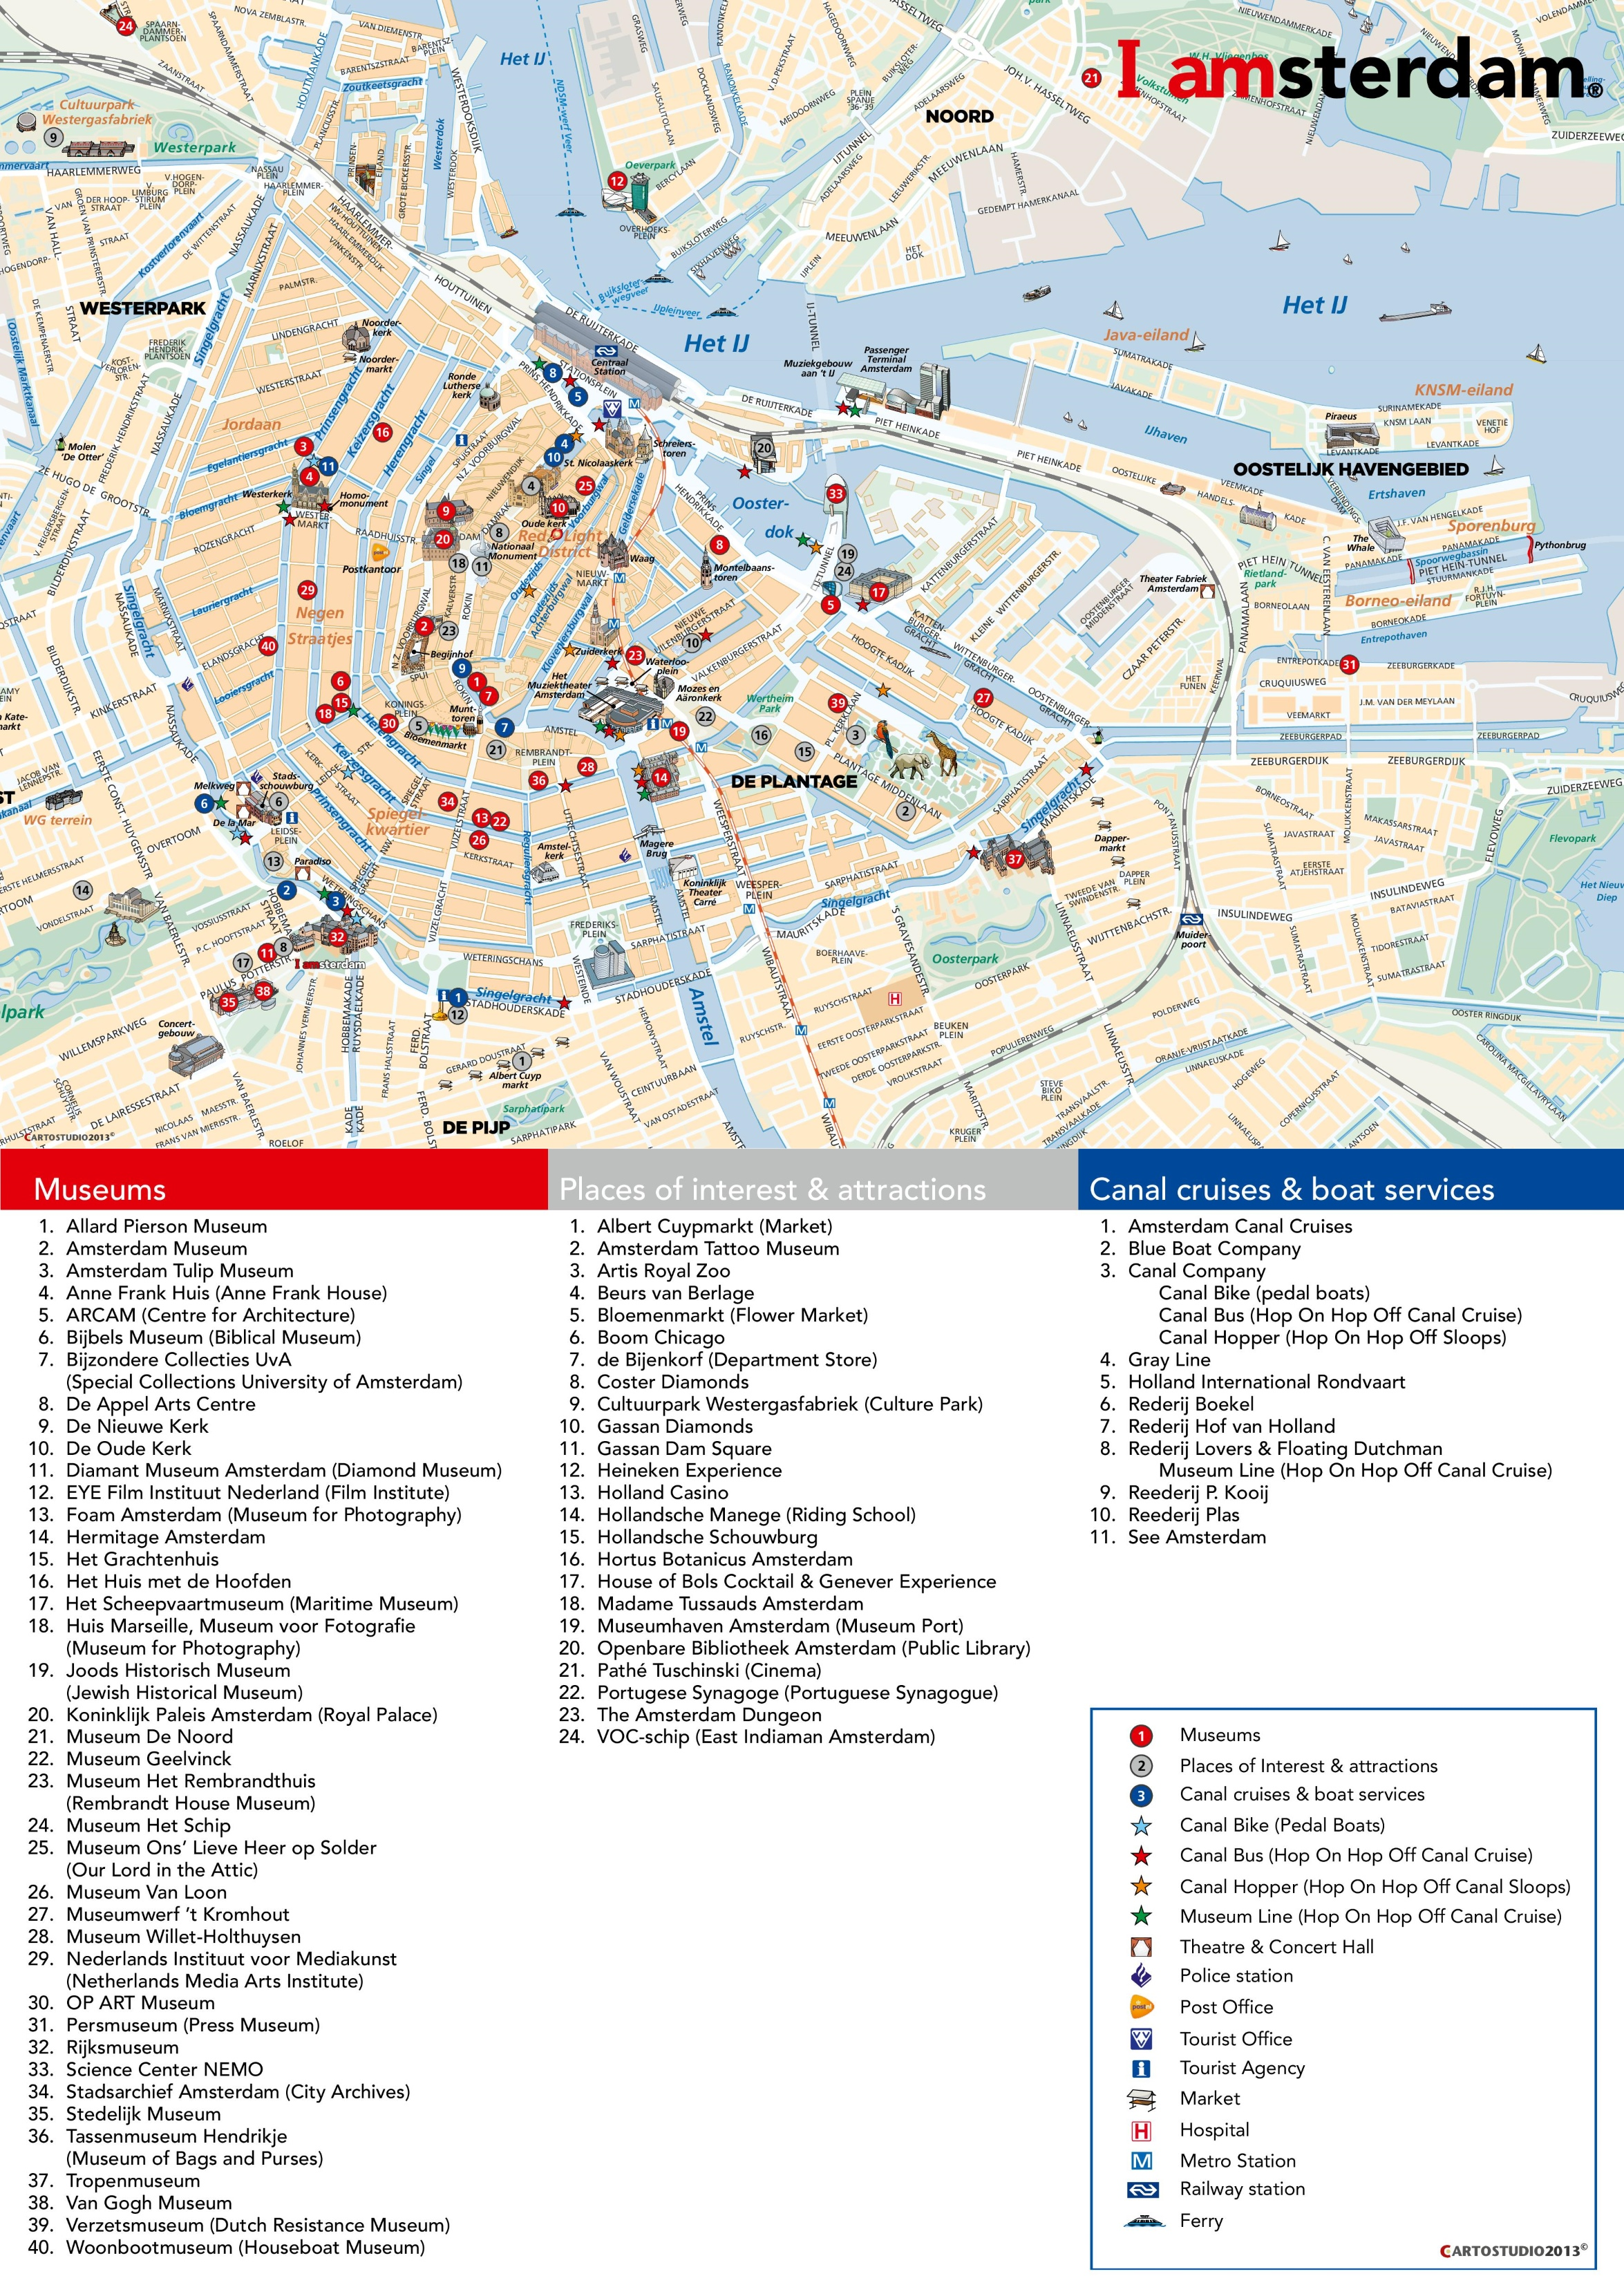 Amsterdam tourist attractions map – Amsterdam Tourist Map